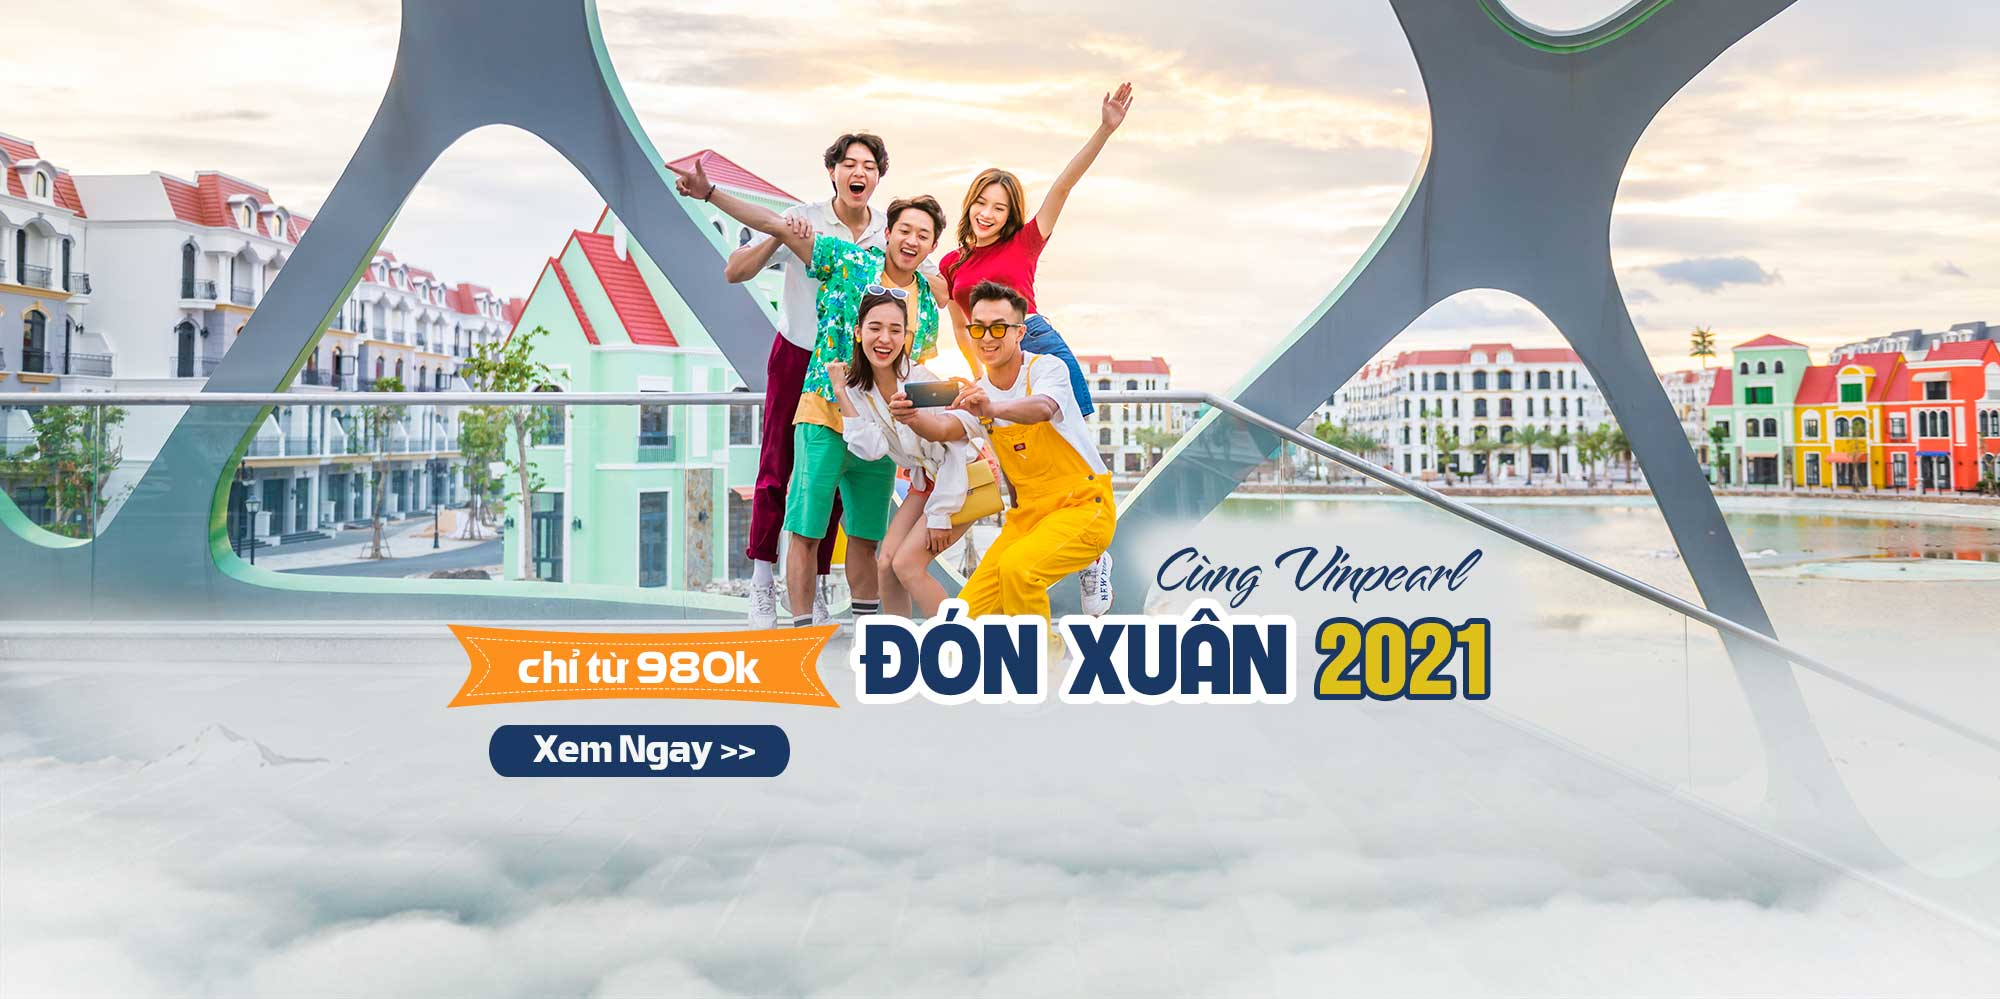 elite-tour-khai-xuan-but-pha-2021